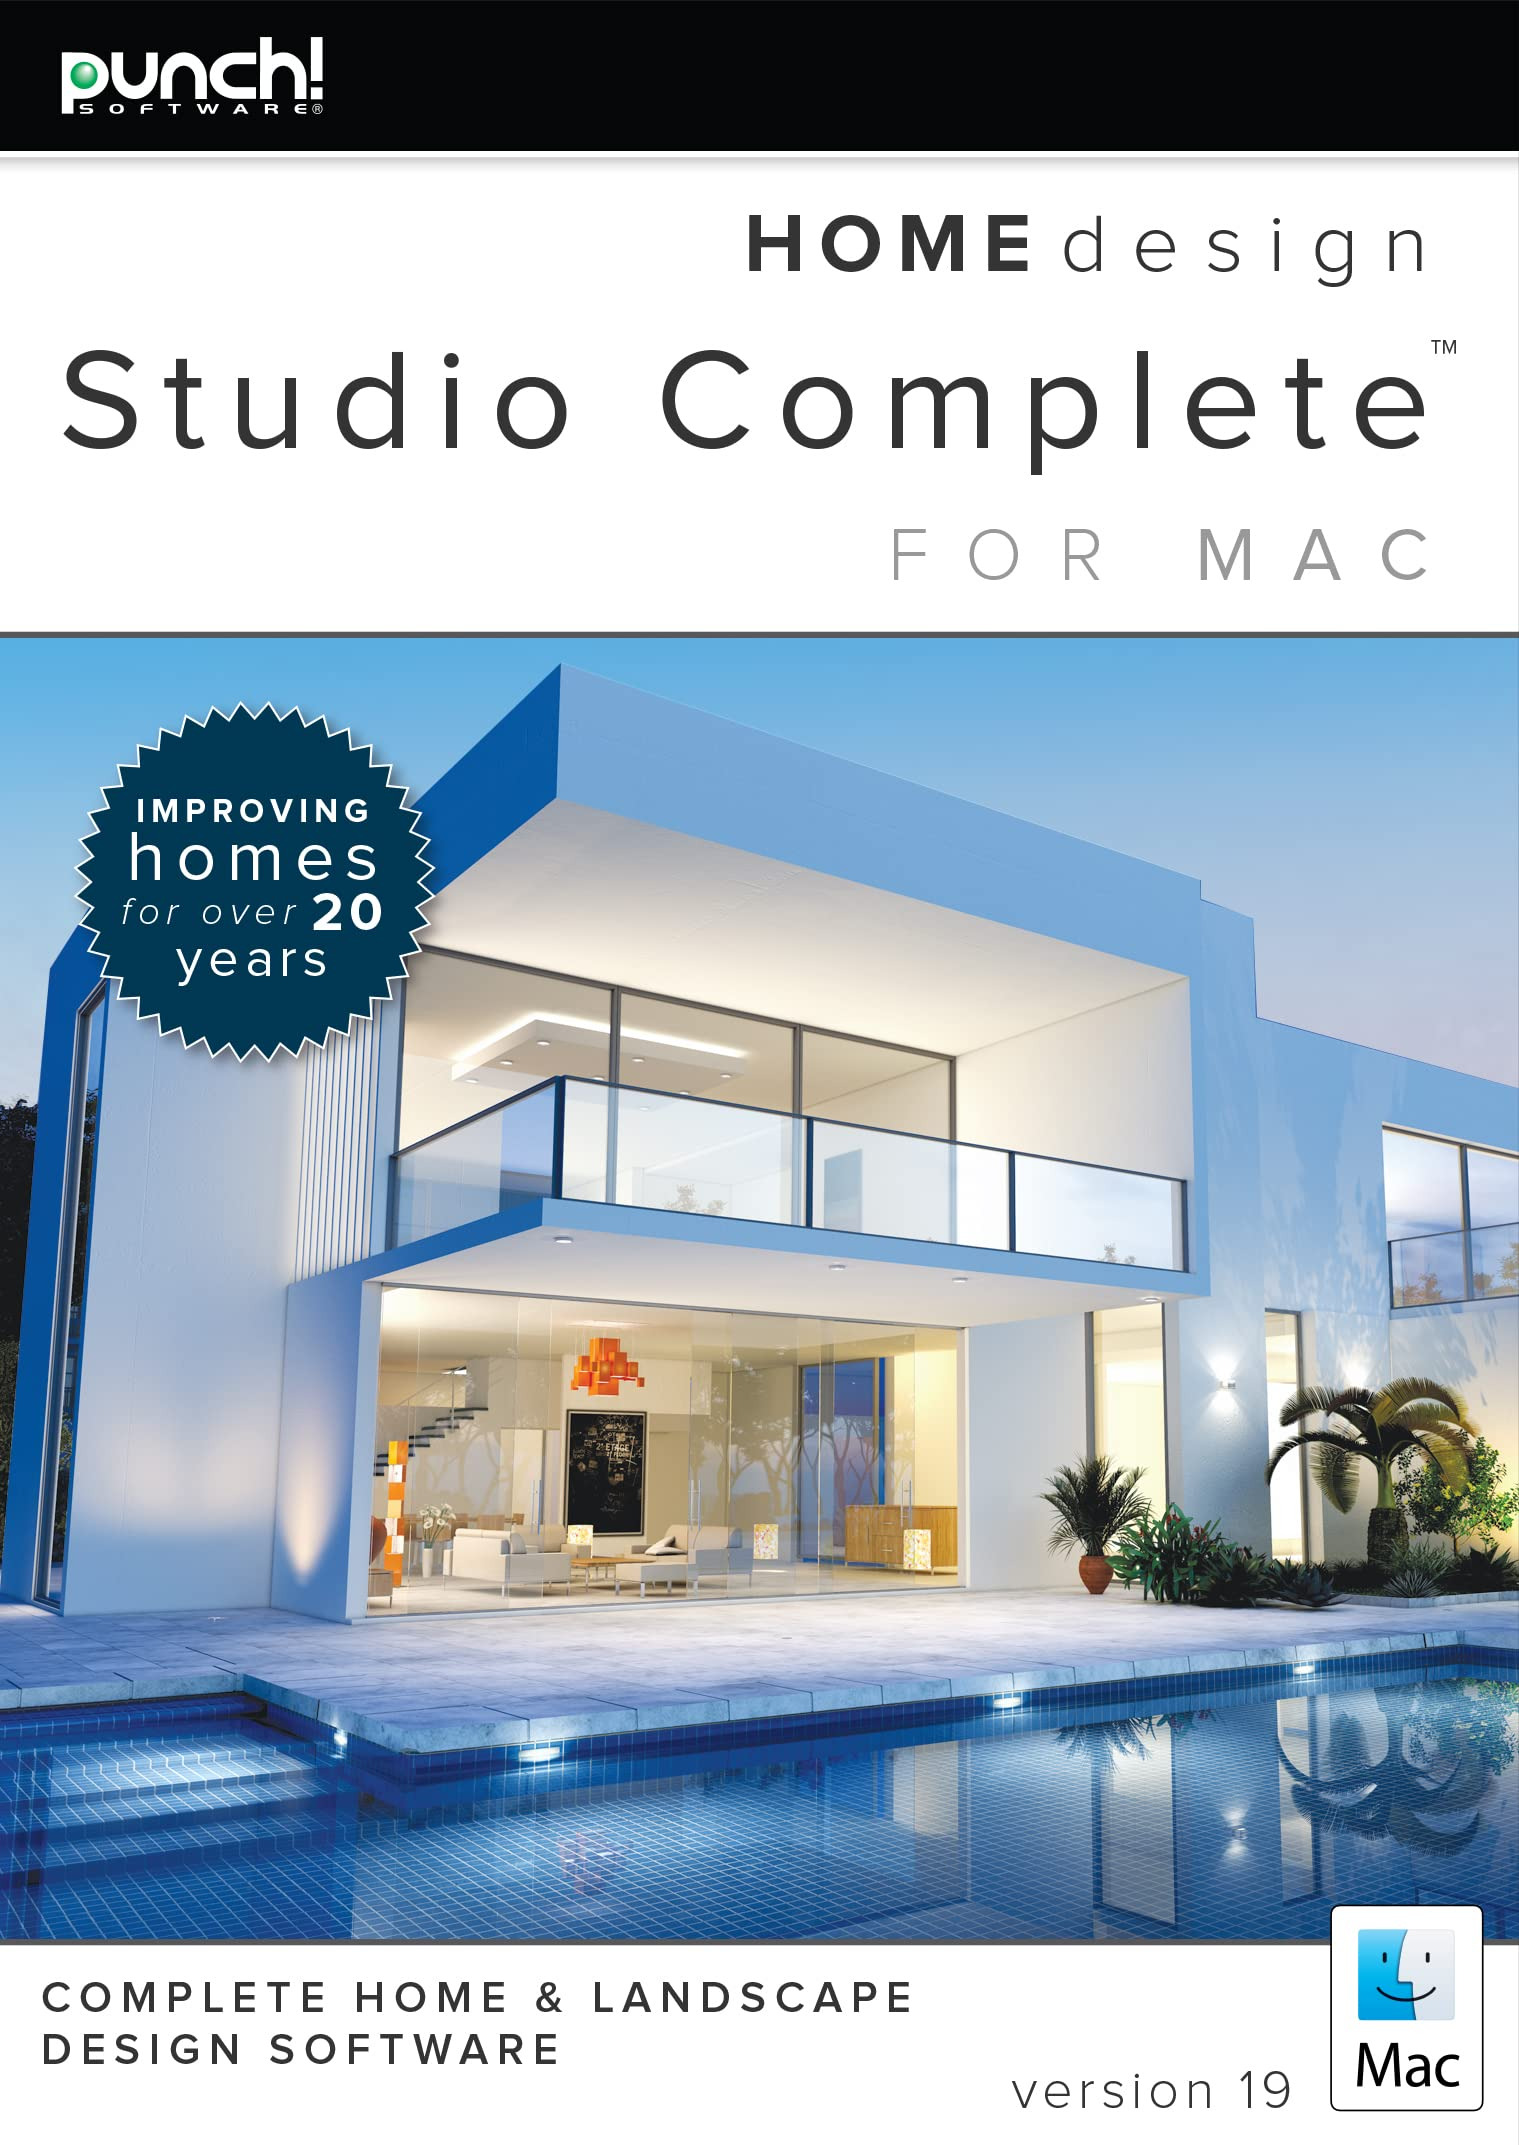 House Planning software Mac Awesome Amazon Punch Home Design Studio Plete for Mac V19